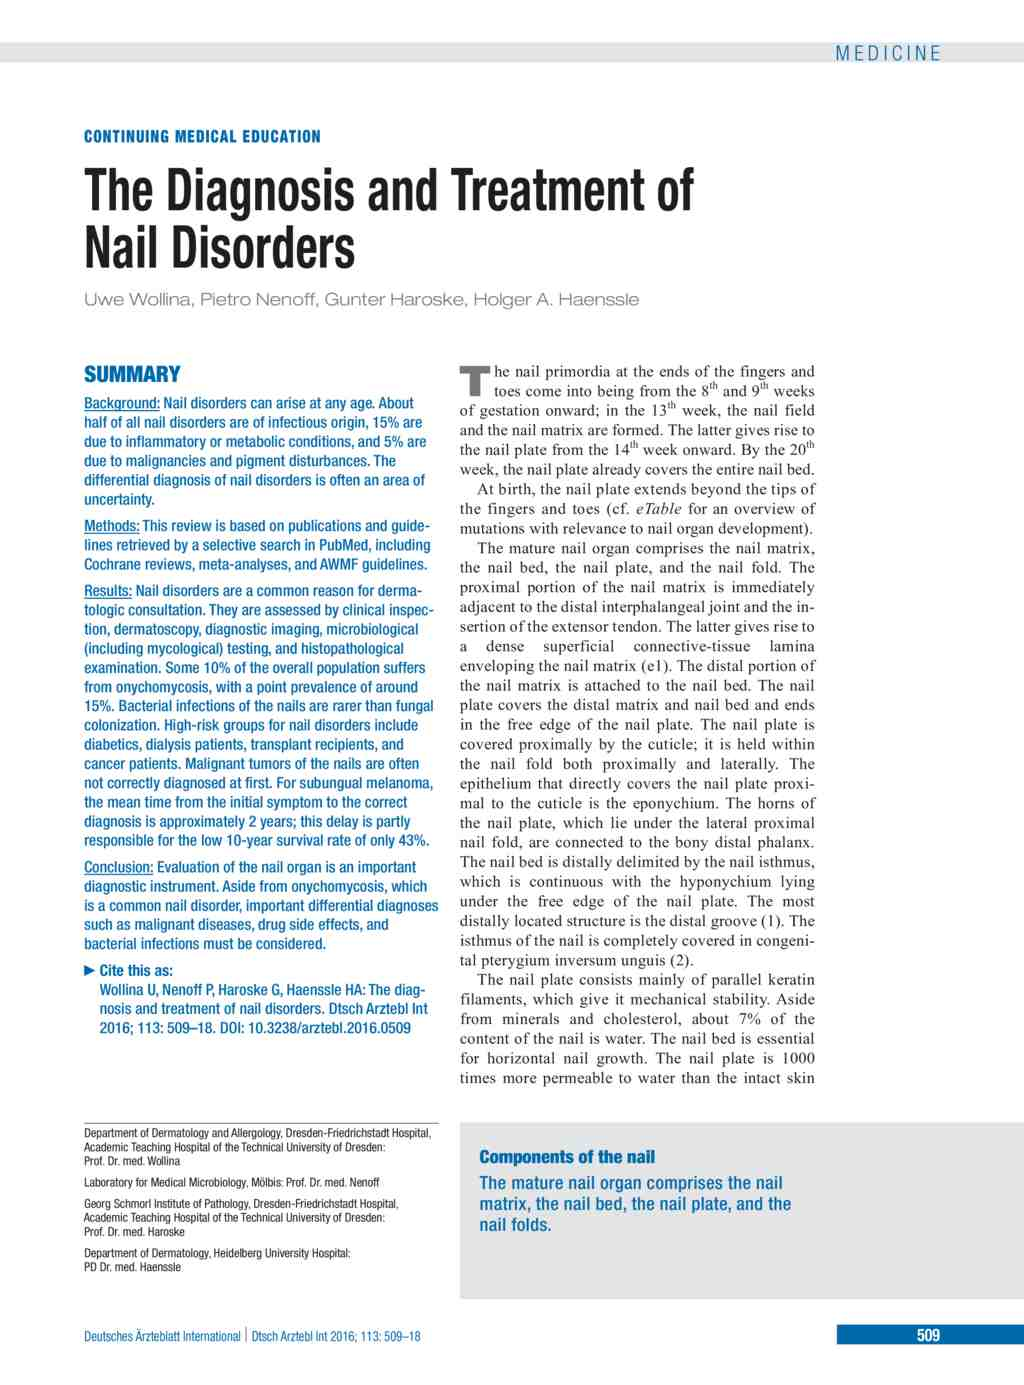 The Diagnosis and Treatment of Nail Disorders (25.07.2016)